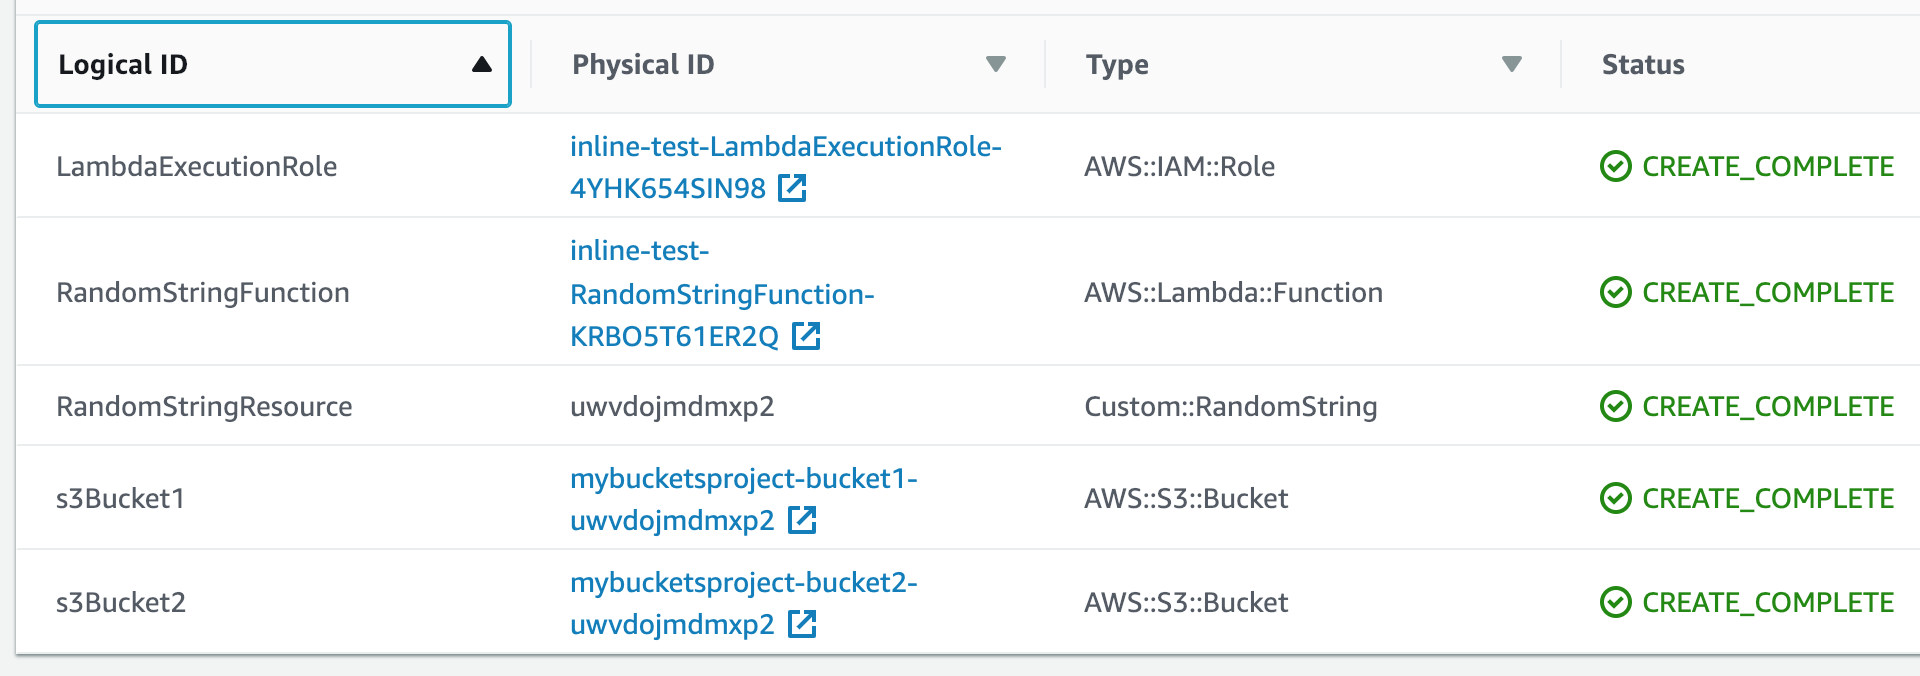 CloudFormation coding with Custom Resources 101: Random string resource